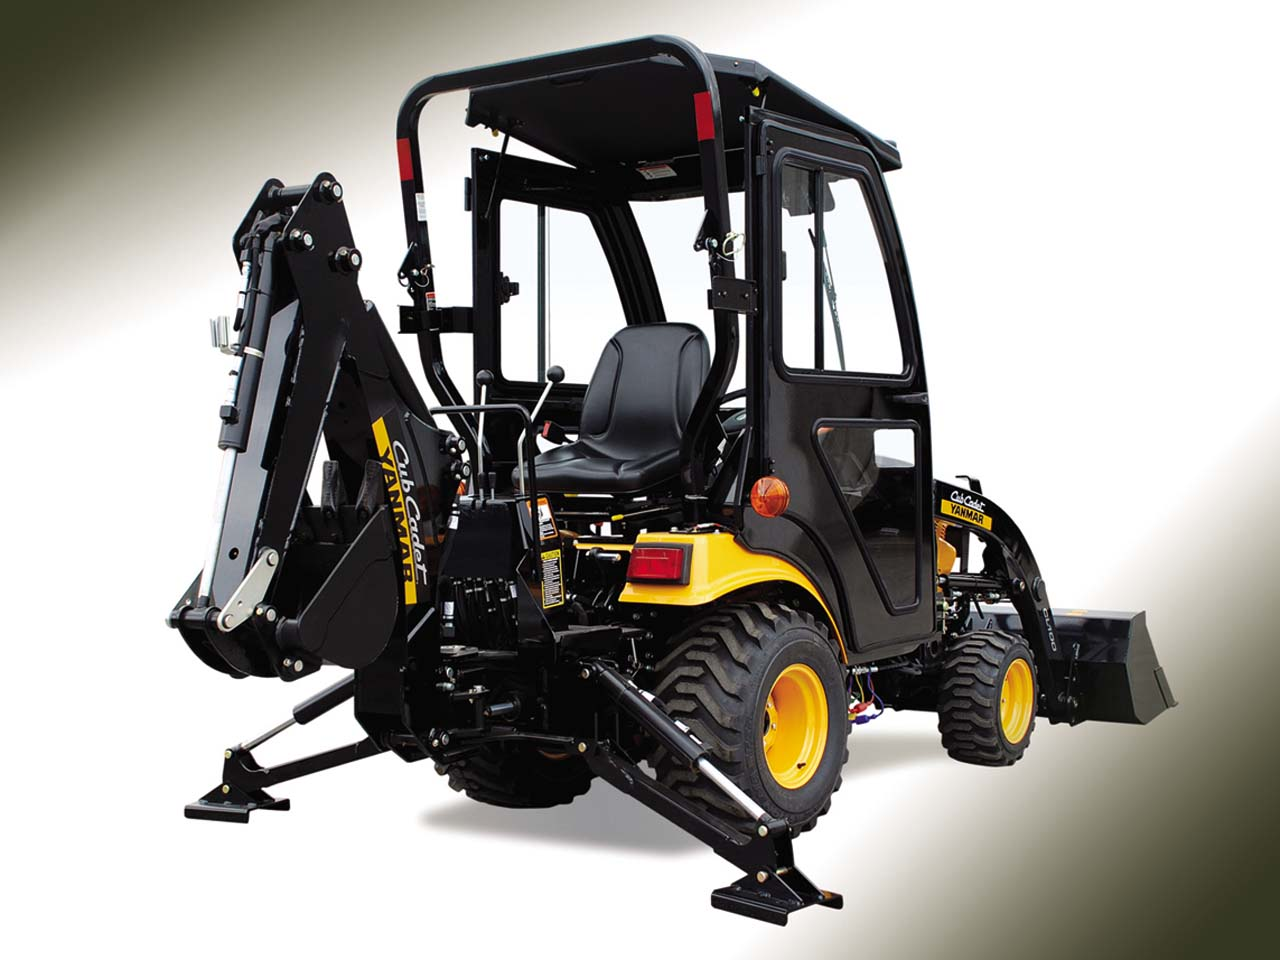 Atv backhoe attachments http www atvillustrated com content curtis